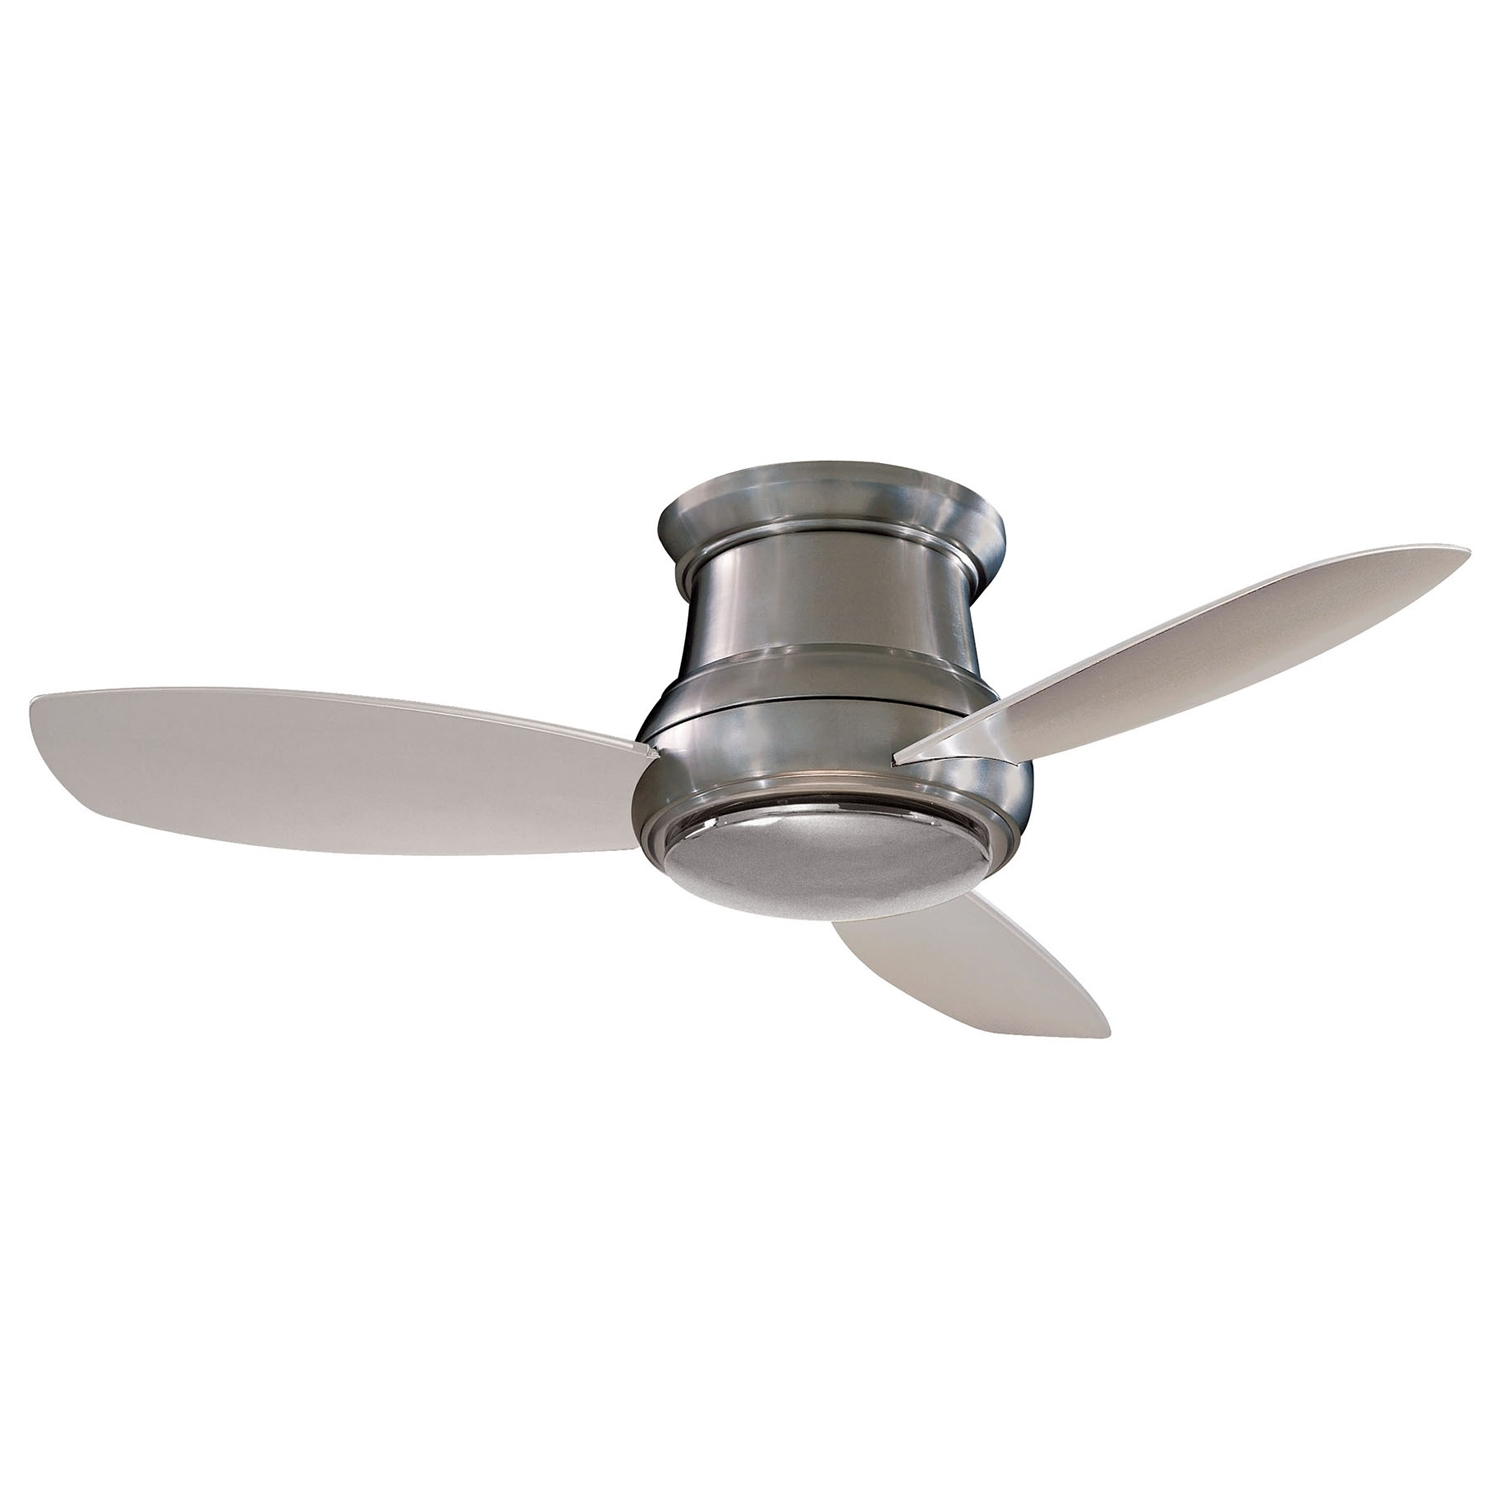 Minka Aire Concept Ii Brushed Nickel 44 Inch Flush Led Ceiling Fan In Fashionable Outdoor Ceiling Fans With Led Globe (View 15 of 20)